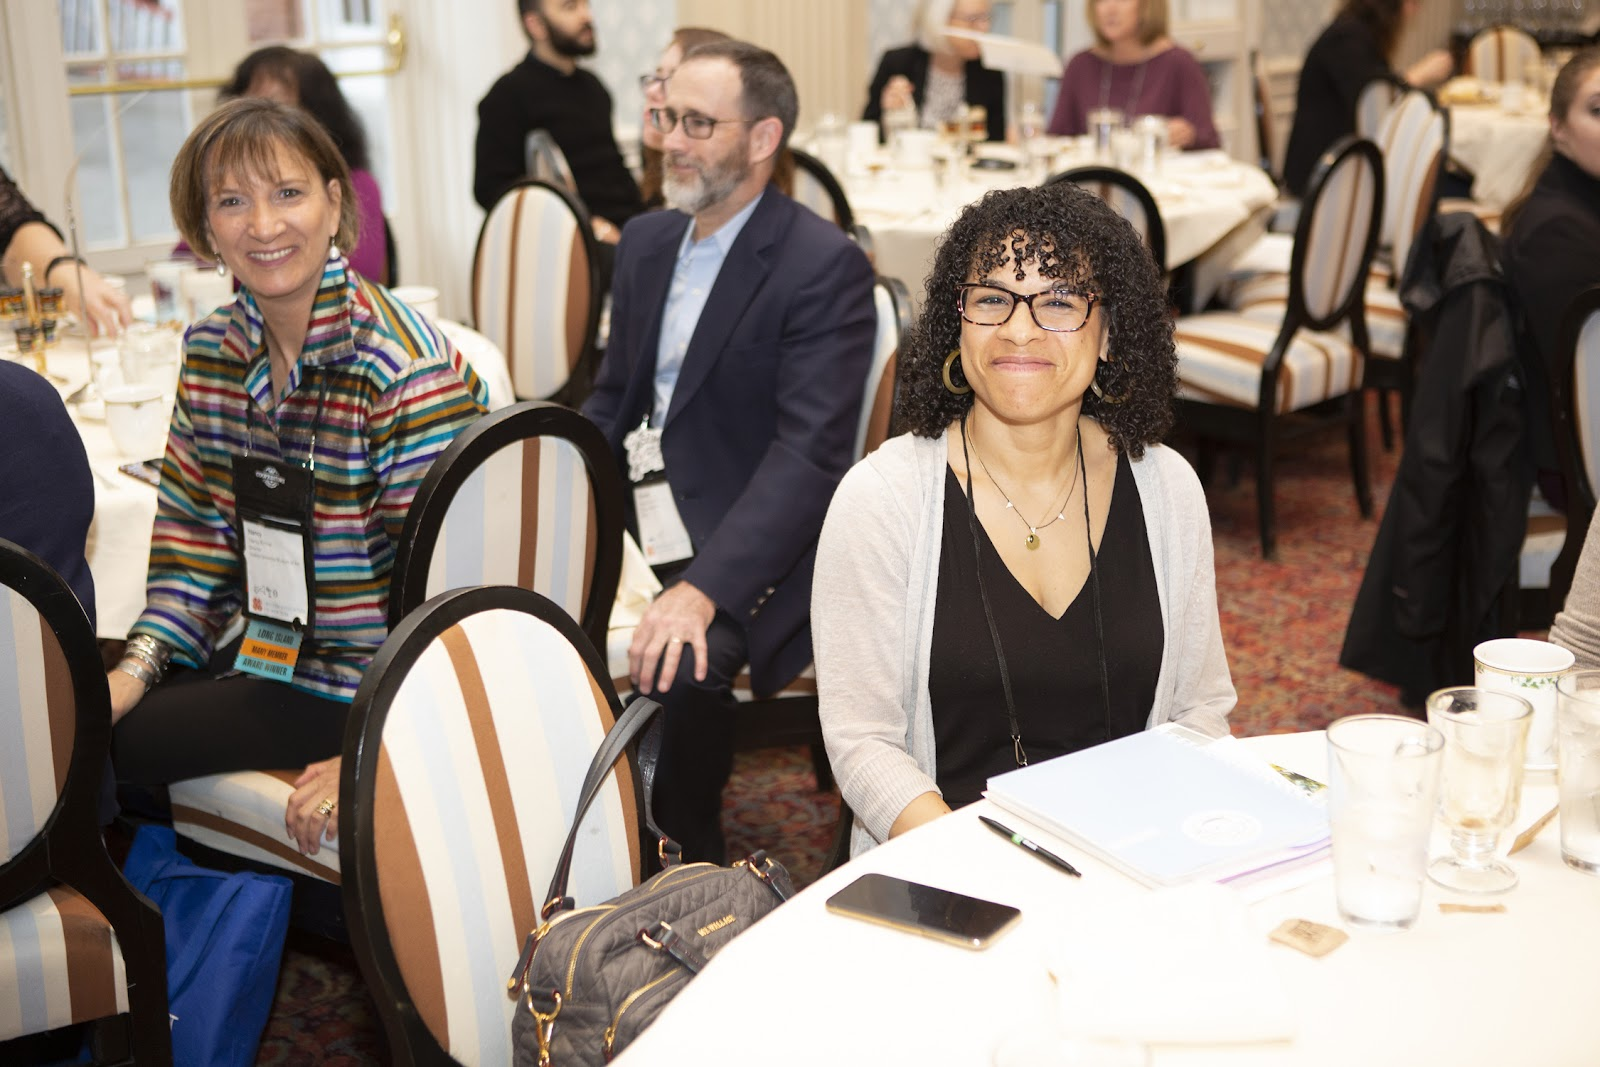 Meredith Horsford, Executive Director of the Dyckman Farmhouse Museum sitting at a table at the Otesaga Resort Hotel during the 2019 annual conference in Cooperstown, NY